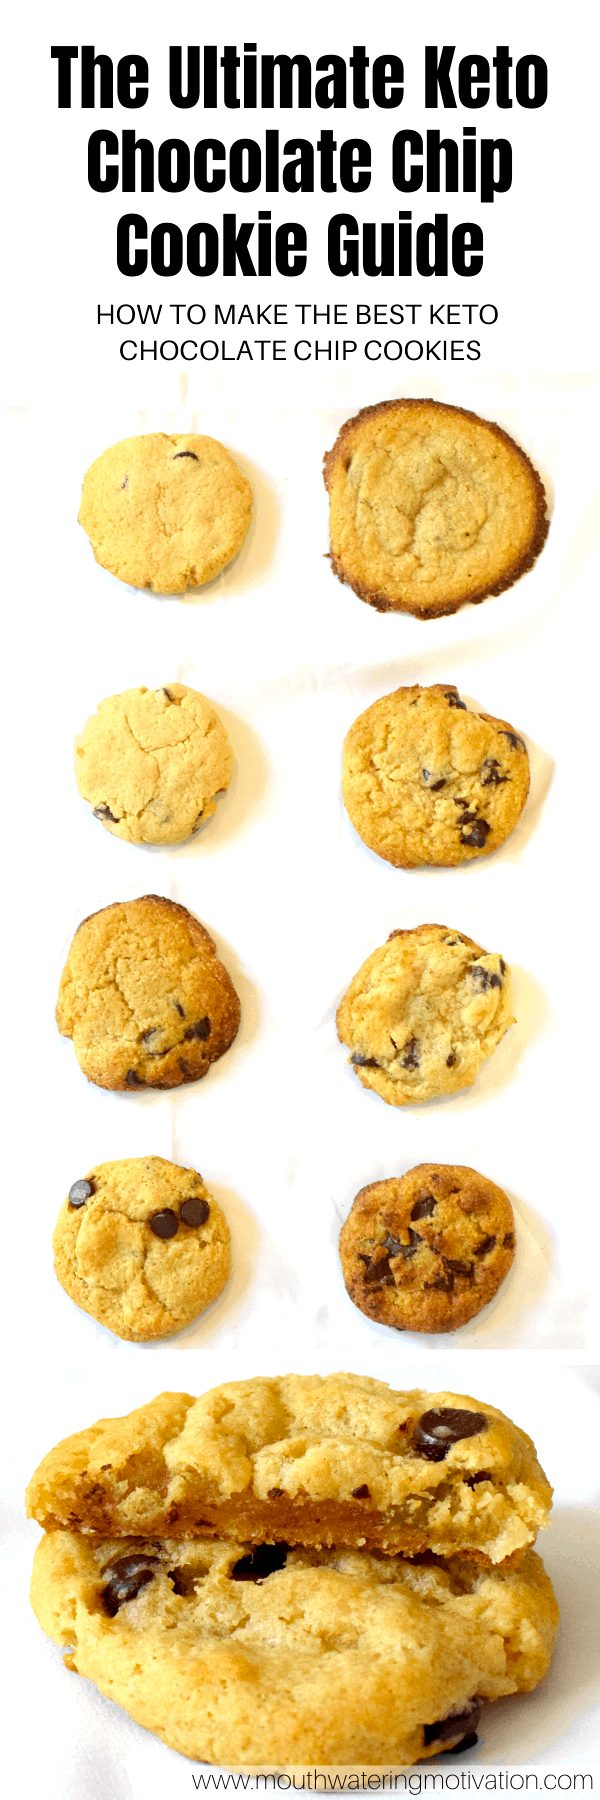 the ultimate keto chocolate chip cookie guide